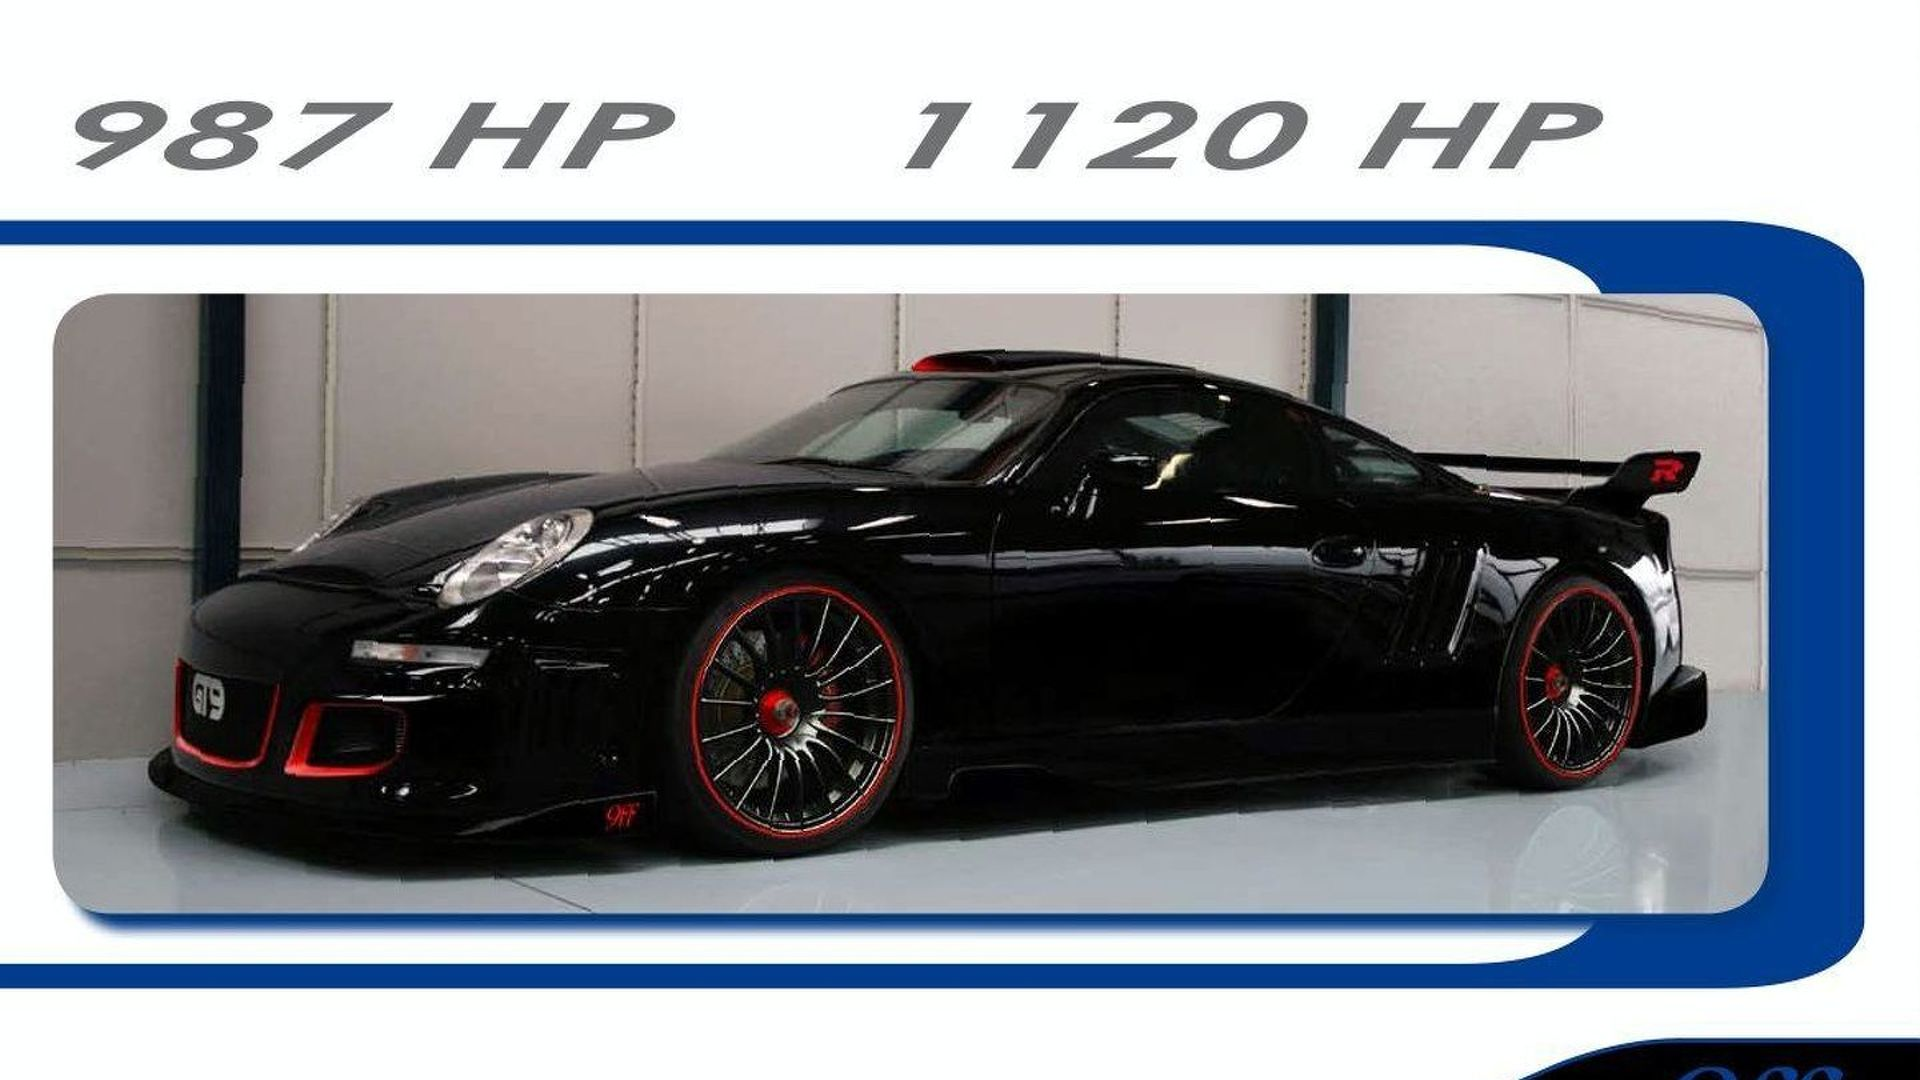 9ff GT9-R Details and Photos Finally Released